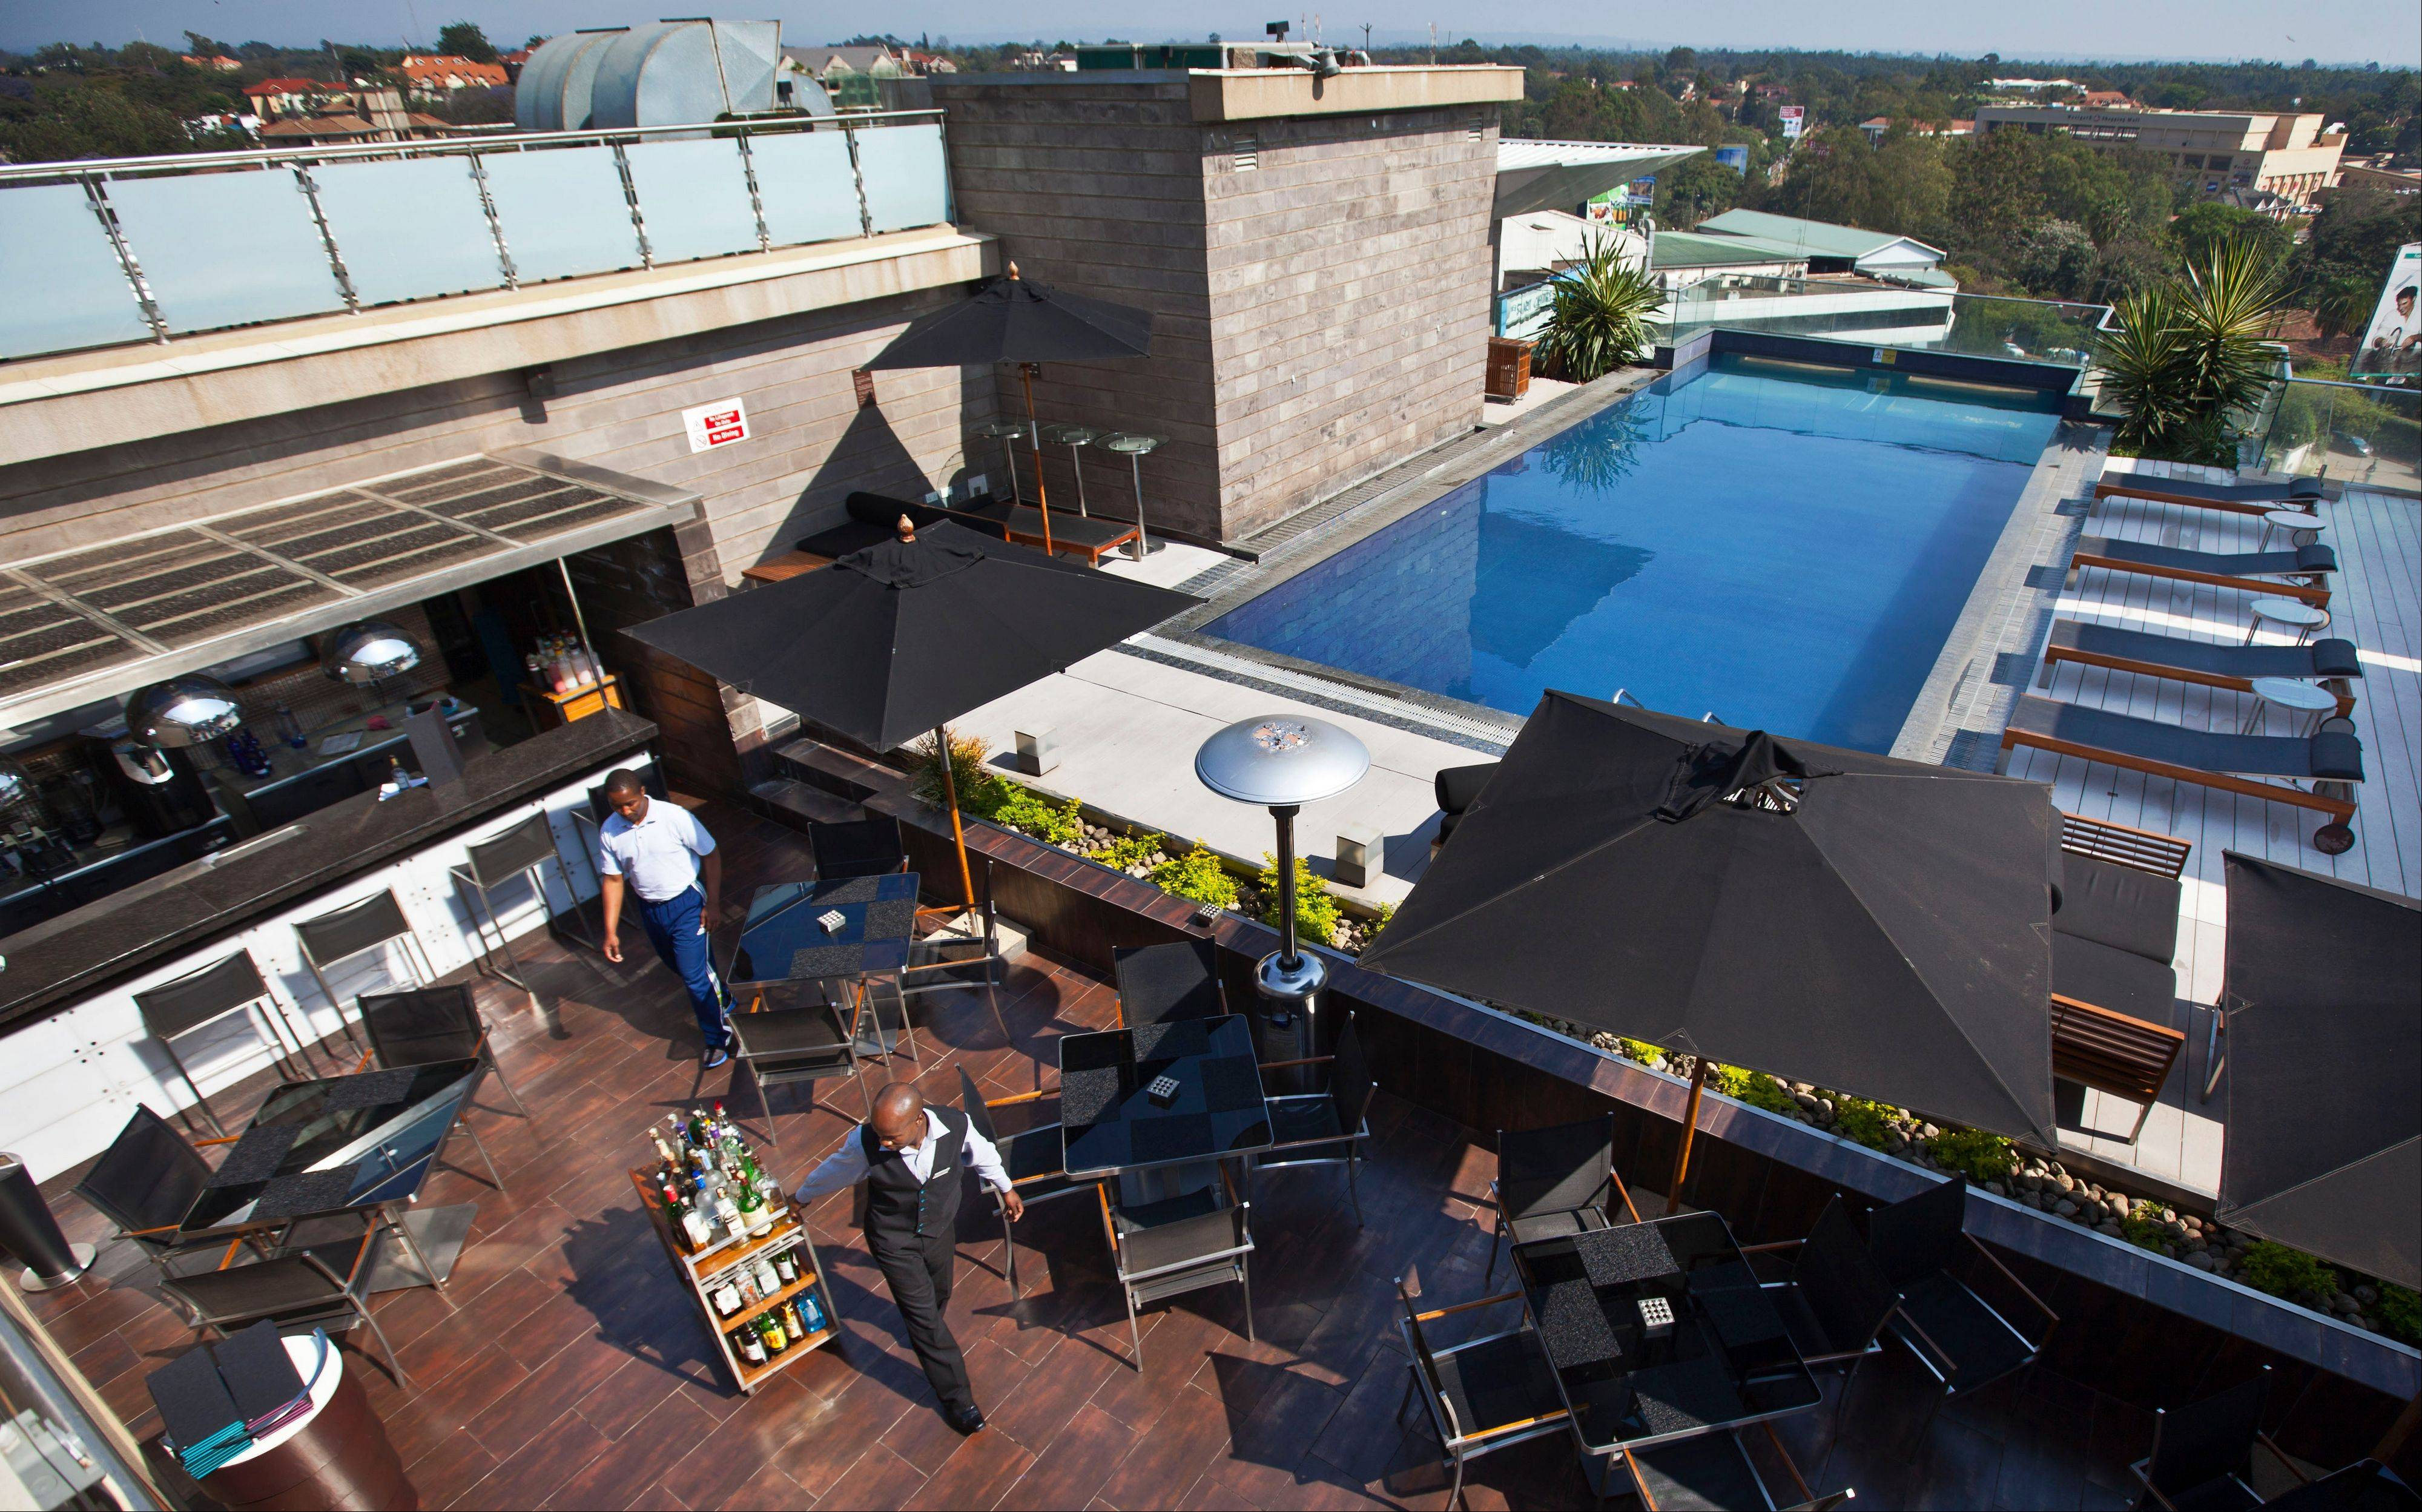 A member of staff wheels drinks at the rooftop pool of the Sankara Nairobi hotel in Nairobi, Kenya. International hotel developers are planning nearly 40,000 new rooms across Africa in the coming years, the continent's business travel is increasing, and Africa's middle class will soon begin leisure travel en masse.